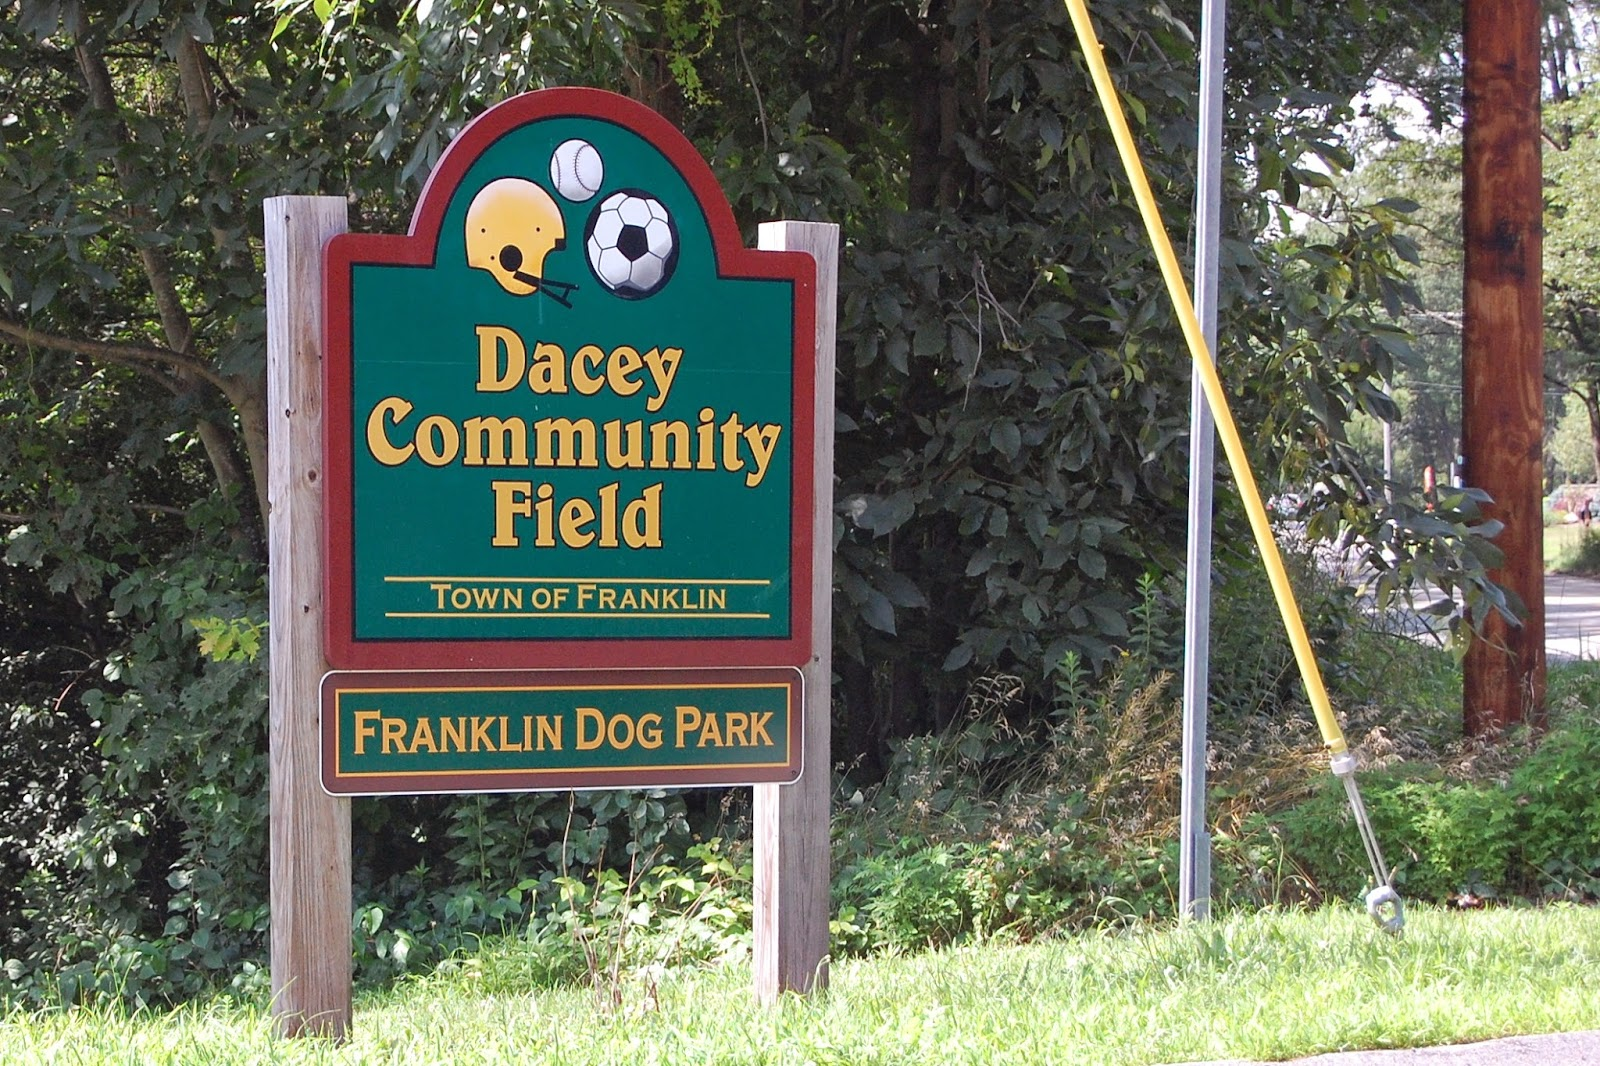 Dacey Community Field - Lincoln St, Franklin